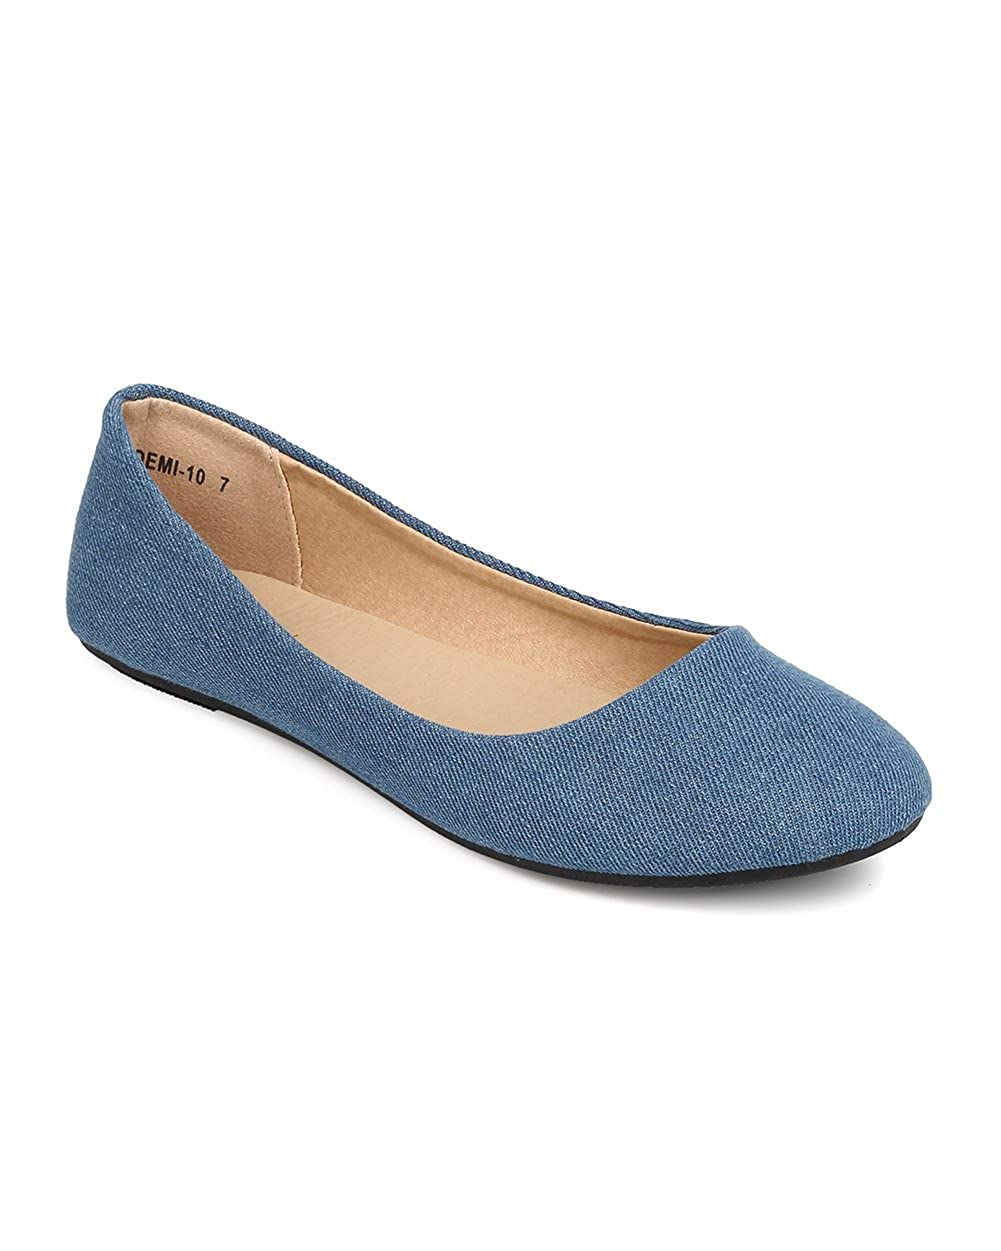 Refresh Women Denim Round Toe Ballerina Flat FA25 - Blue Denim B01HR01A18 6.5 B(M) US